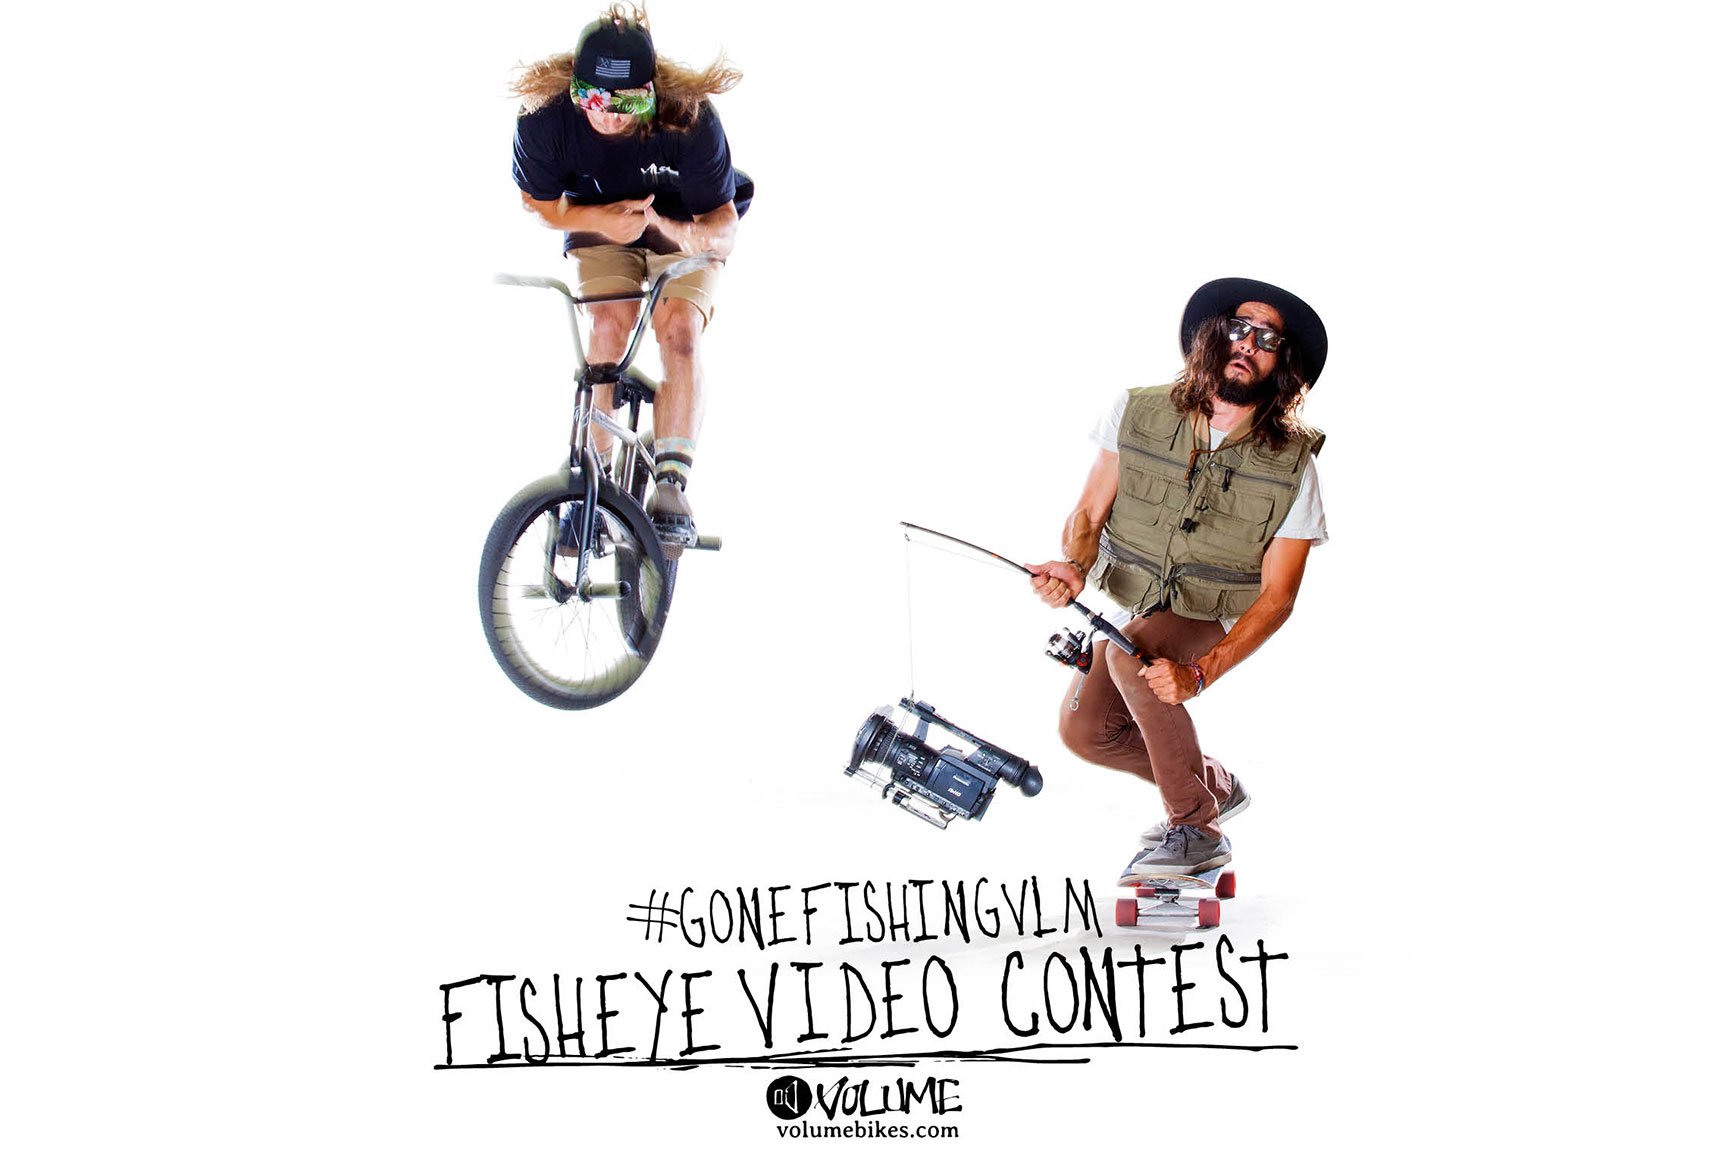 Gon Fishing Video Contest